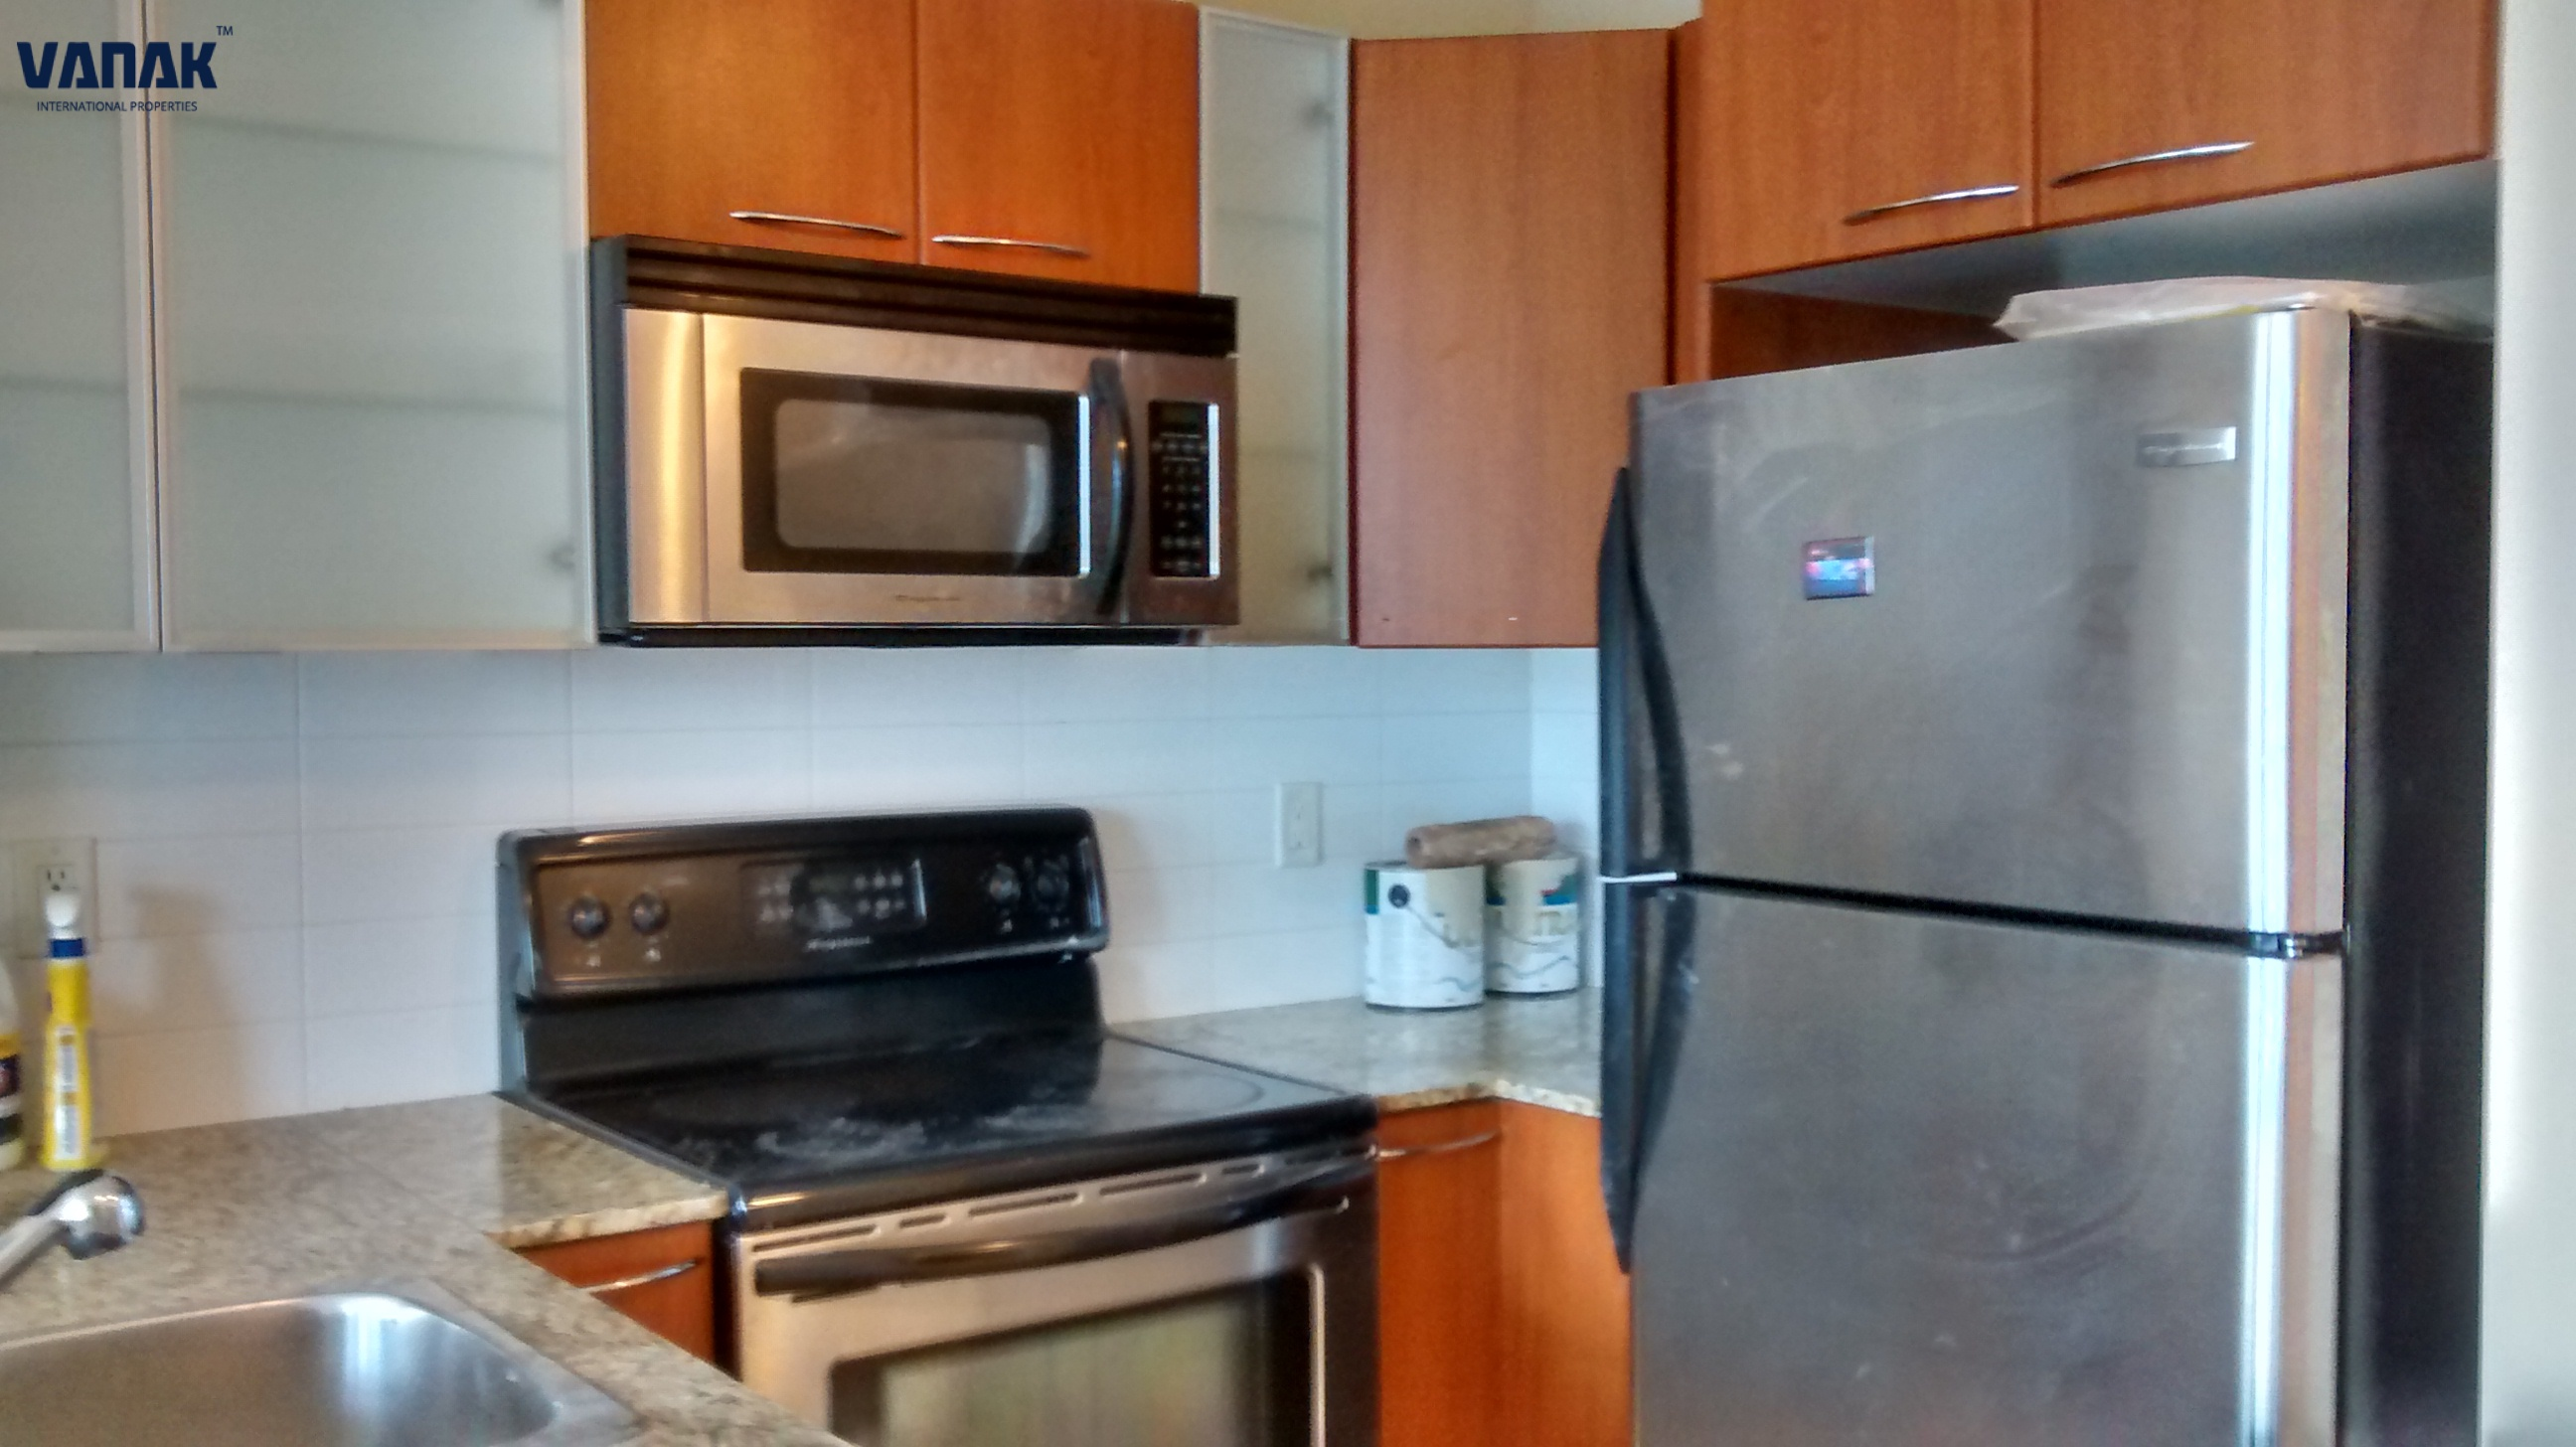 1483 East King Edward, Vancouver East, BC, BC, Canada, 1 Bedroom Bedrooms, ,1 BathroomBathrooms,Apartment,For Rent,King Edward Village,East King Edward,4,1476